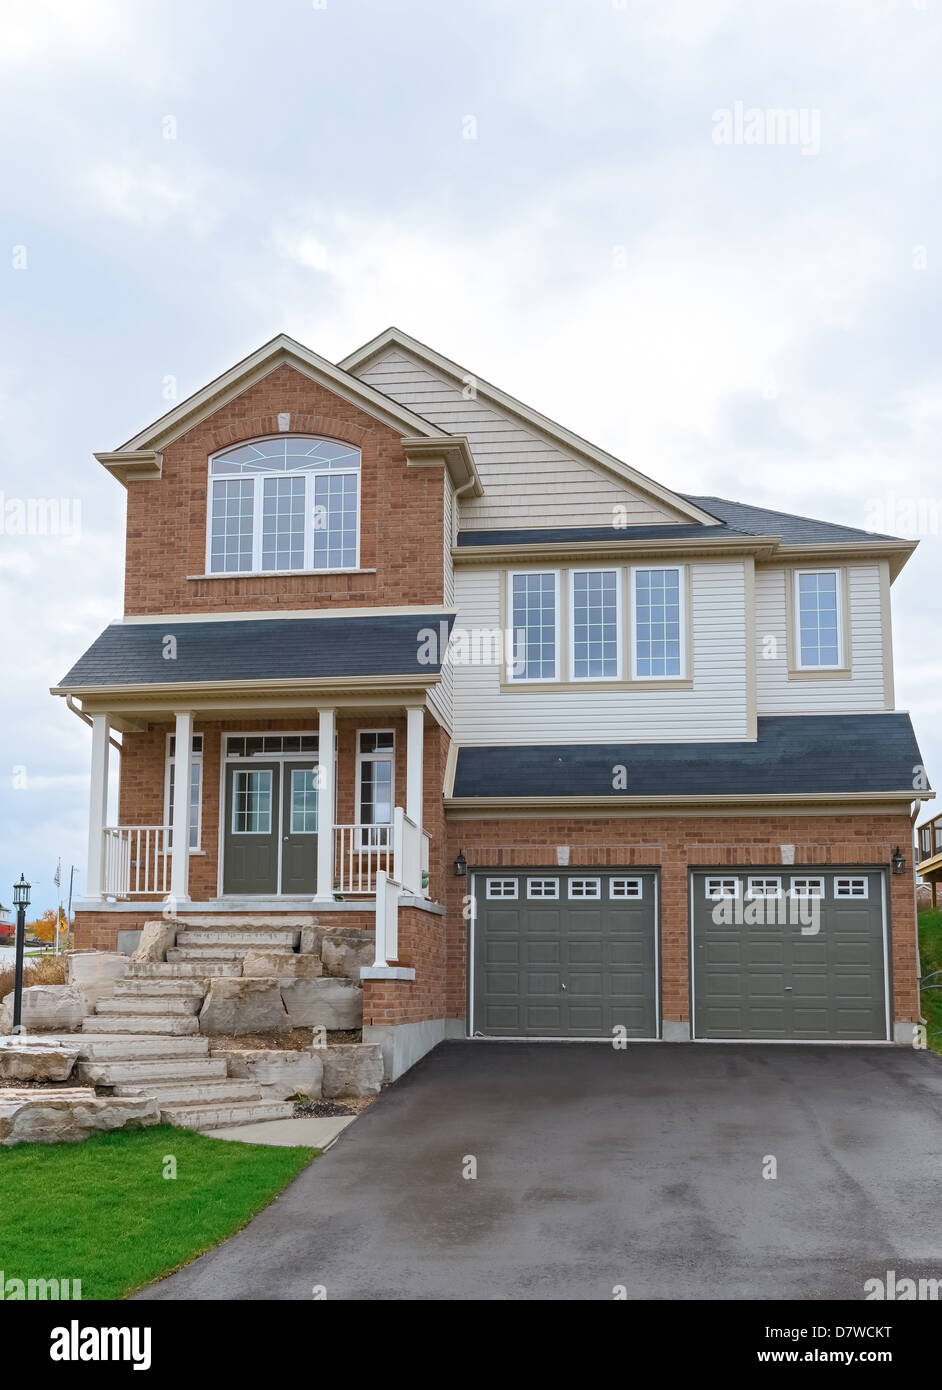 new two story house in canada ontario cambridge new houses subdivision stock image - Two Story Houses Pictures